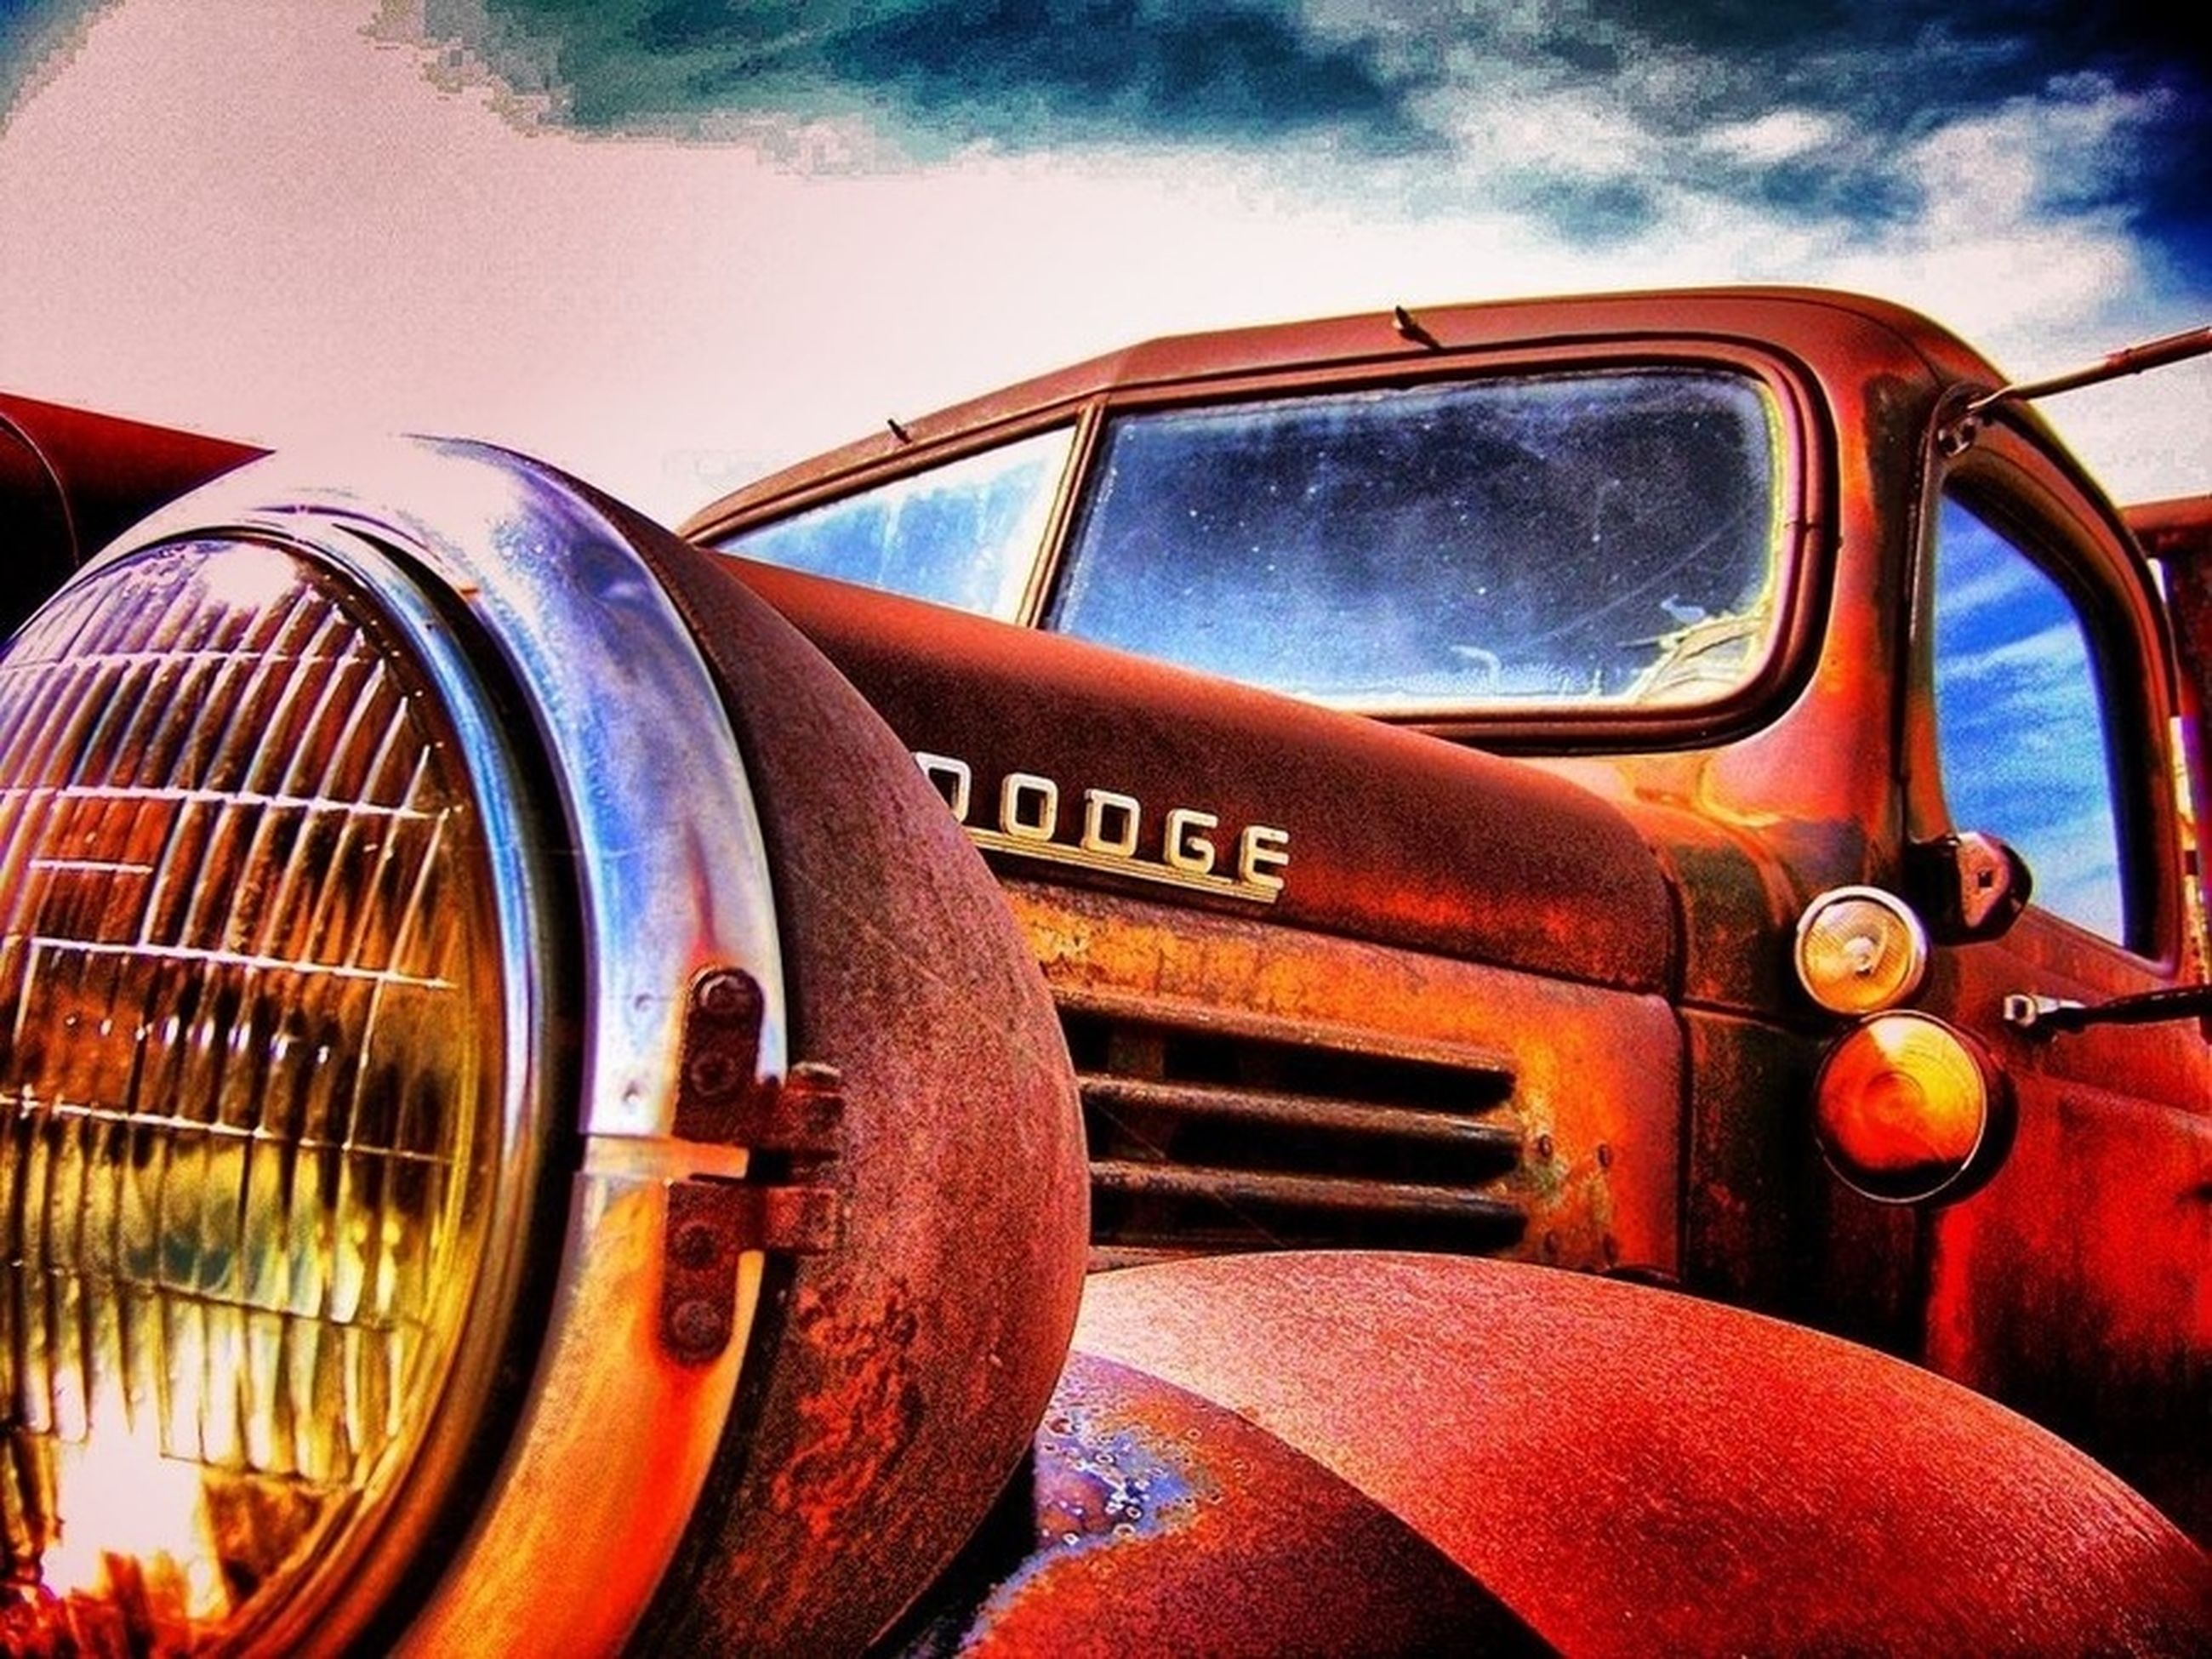 transportation, mode of transport, land vehicle, sky, car, close-up, cloud - sky, part of, old-fashioned, wheel, travel, stationary, old, vehicle part, rusty, metal, train - vehicle, vehicle interior, side-view mirror, vintage car